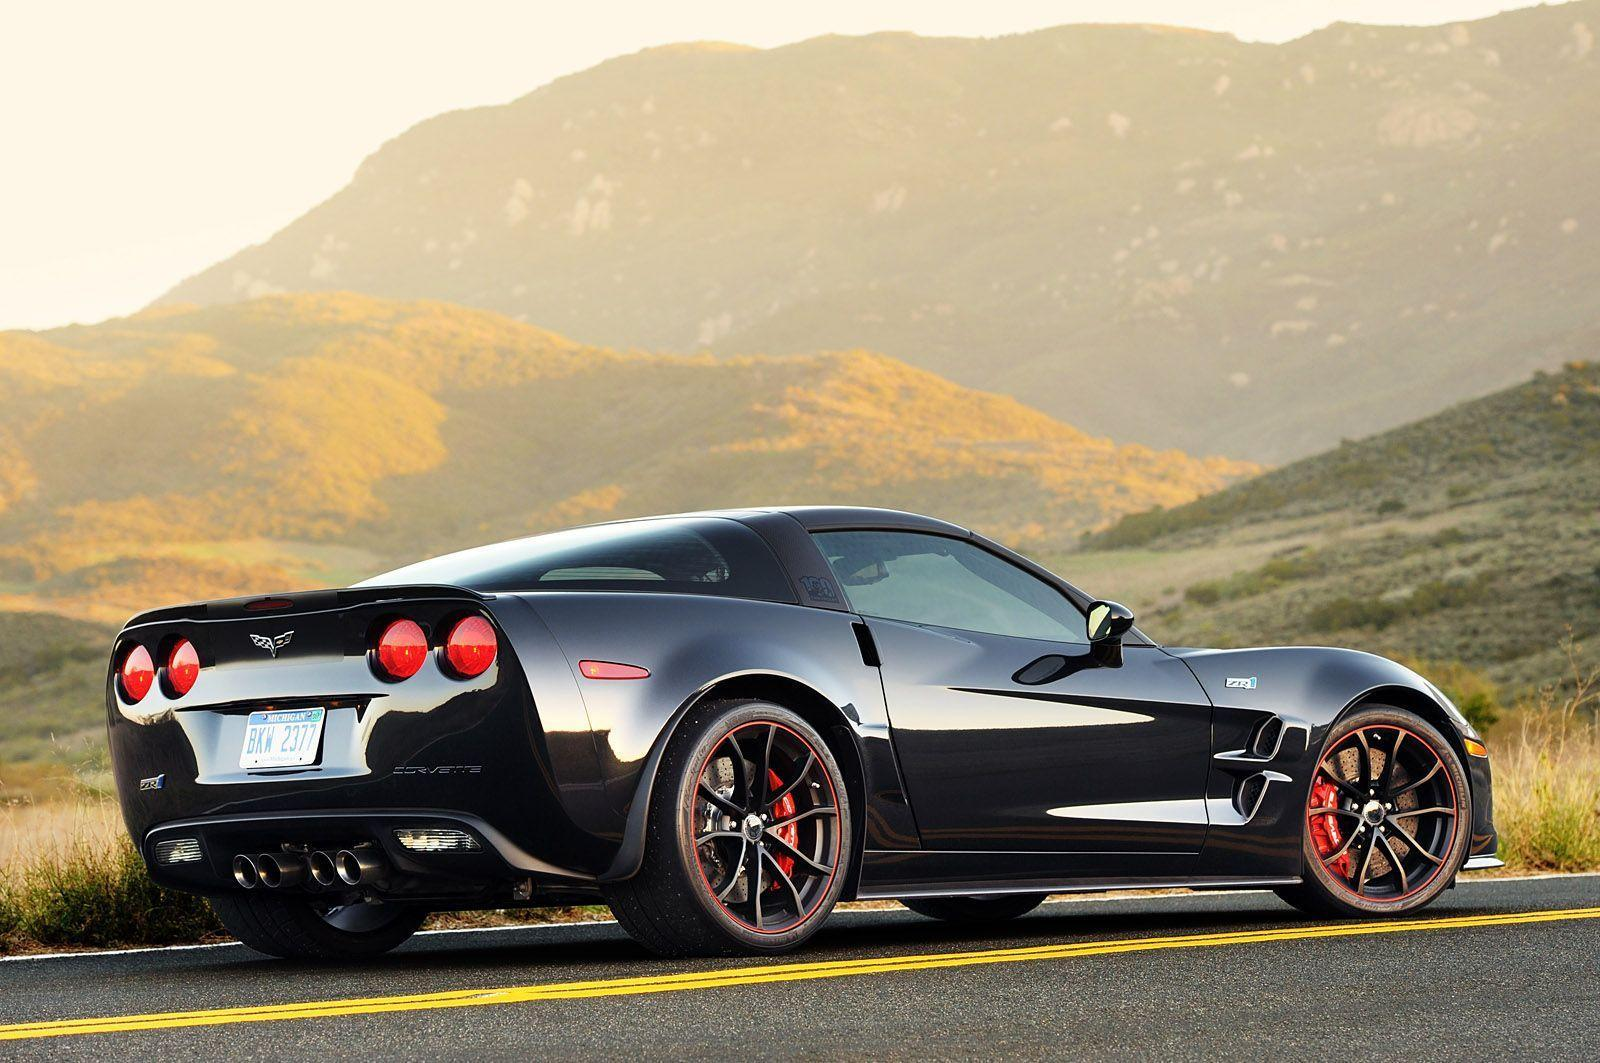 Corvette Zr1 Wallpapers Wallpaper Cave